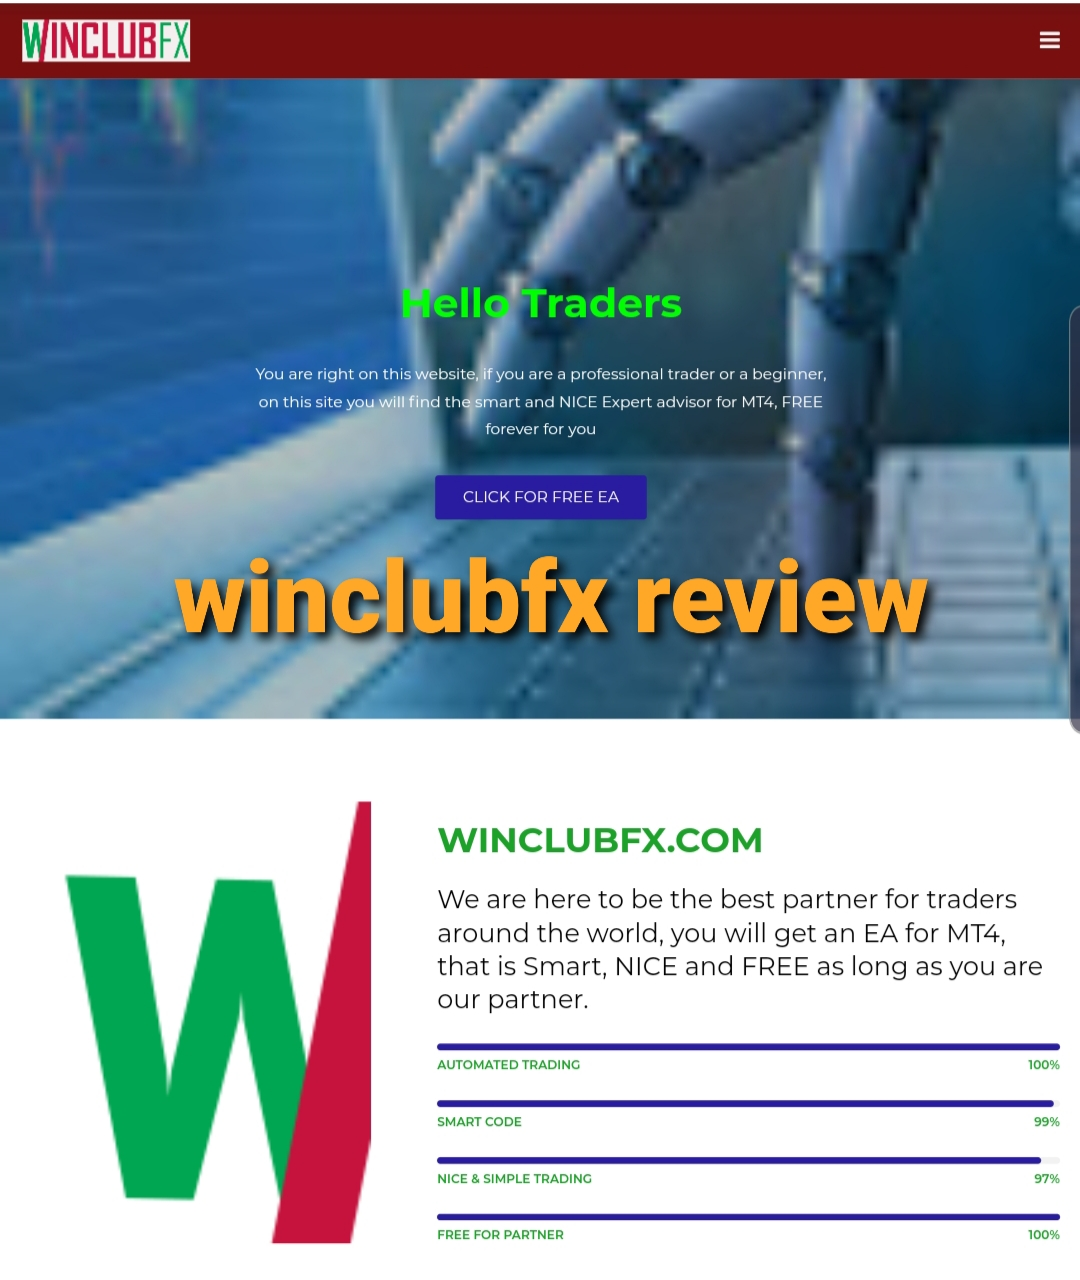 Winclubfx review